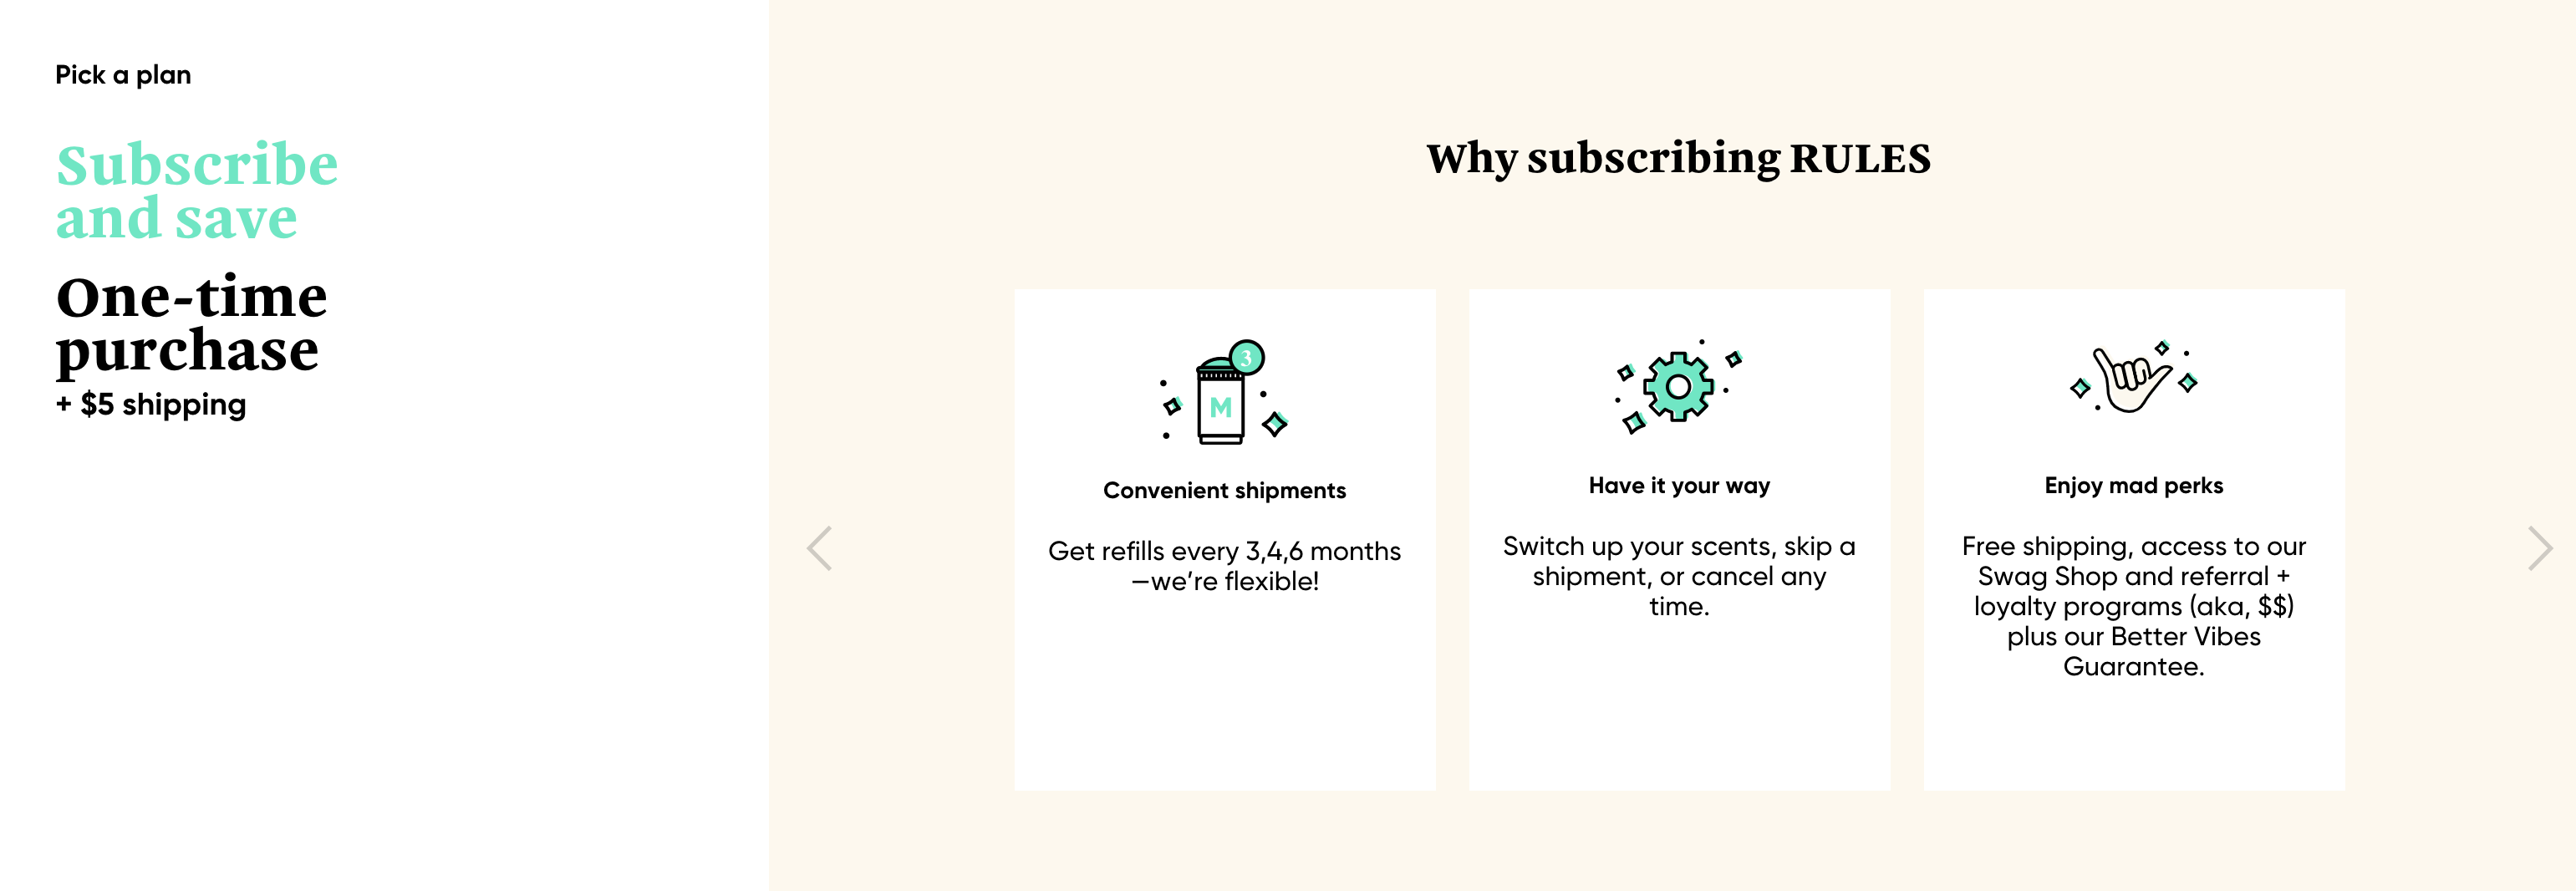 Step 3 in Myro's sign up flow is the choice to subscribe or make a one-time purchase.